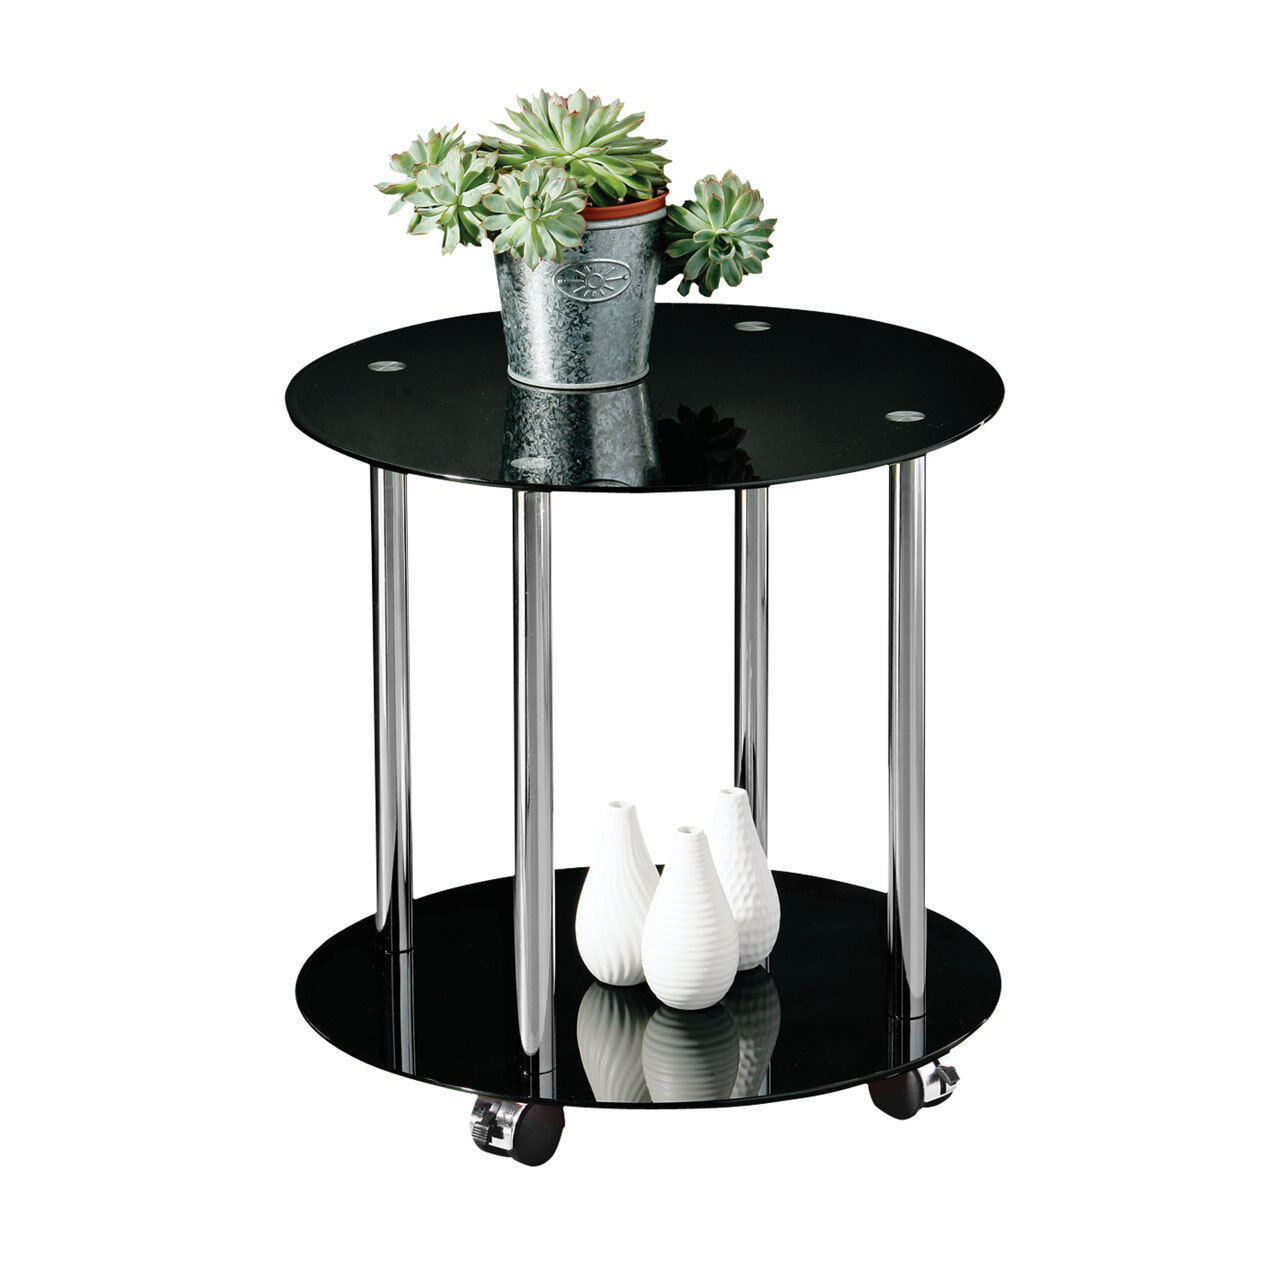 ... Table on castor wheels with black glass and chrome finish metal frame